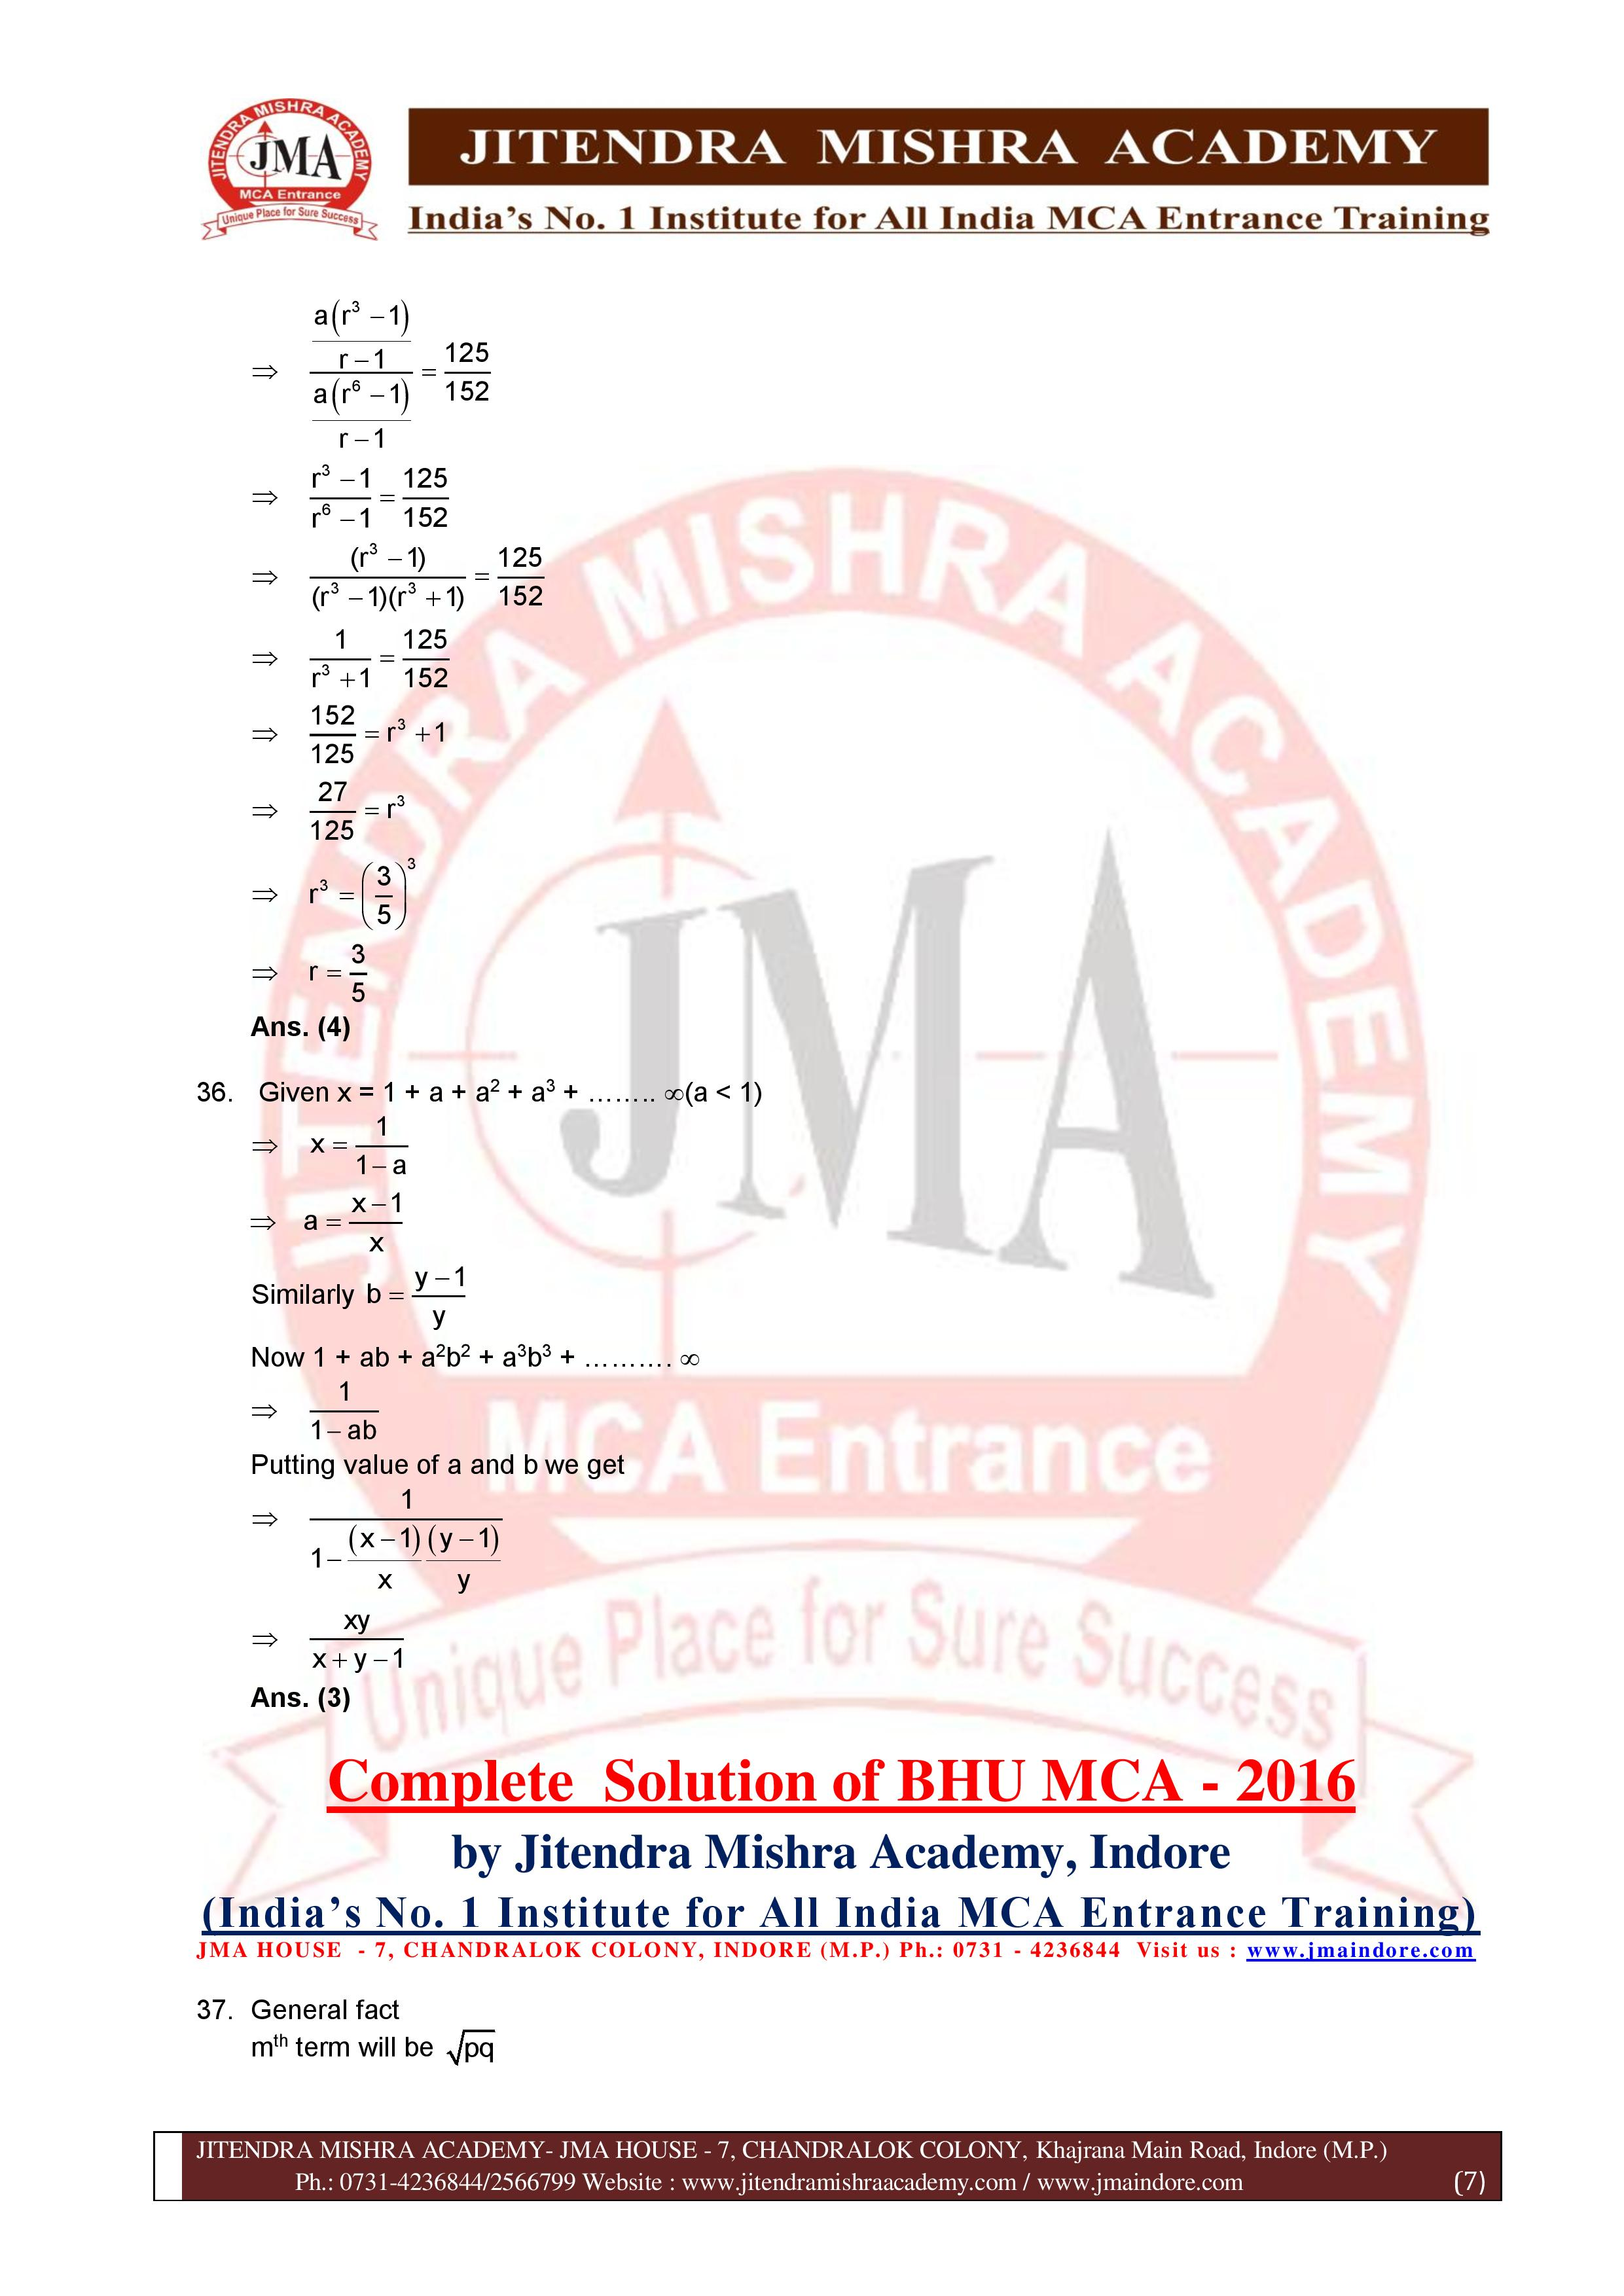 BHU 2016 SOLUTION (SET - 1)-page-007